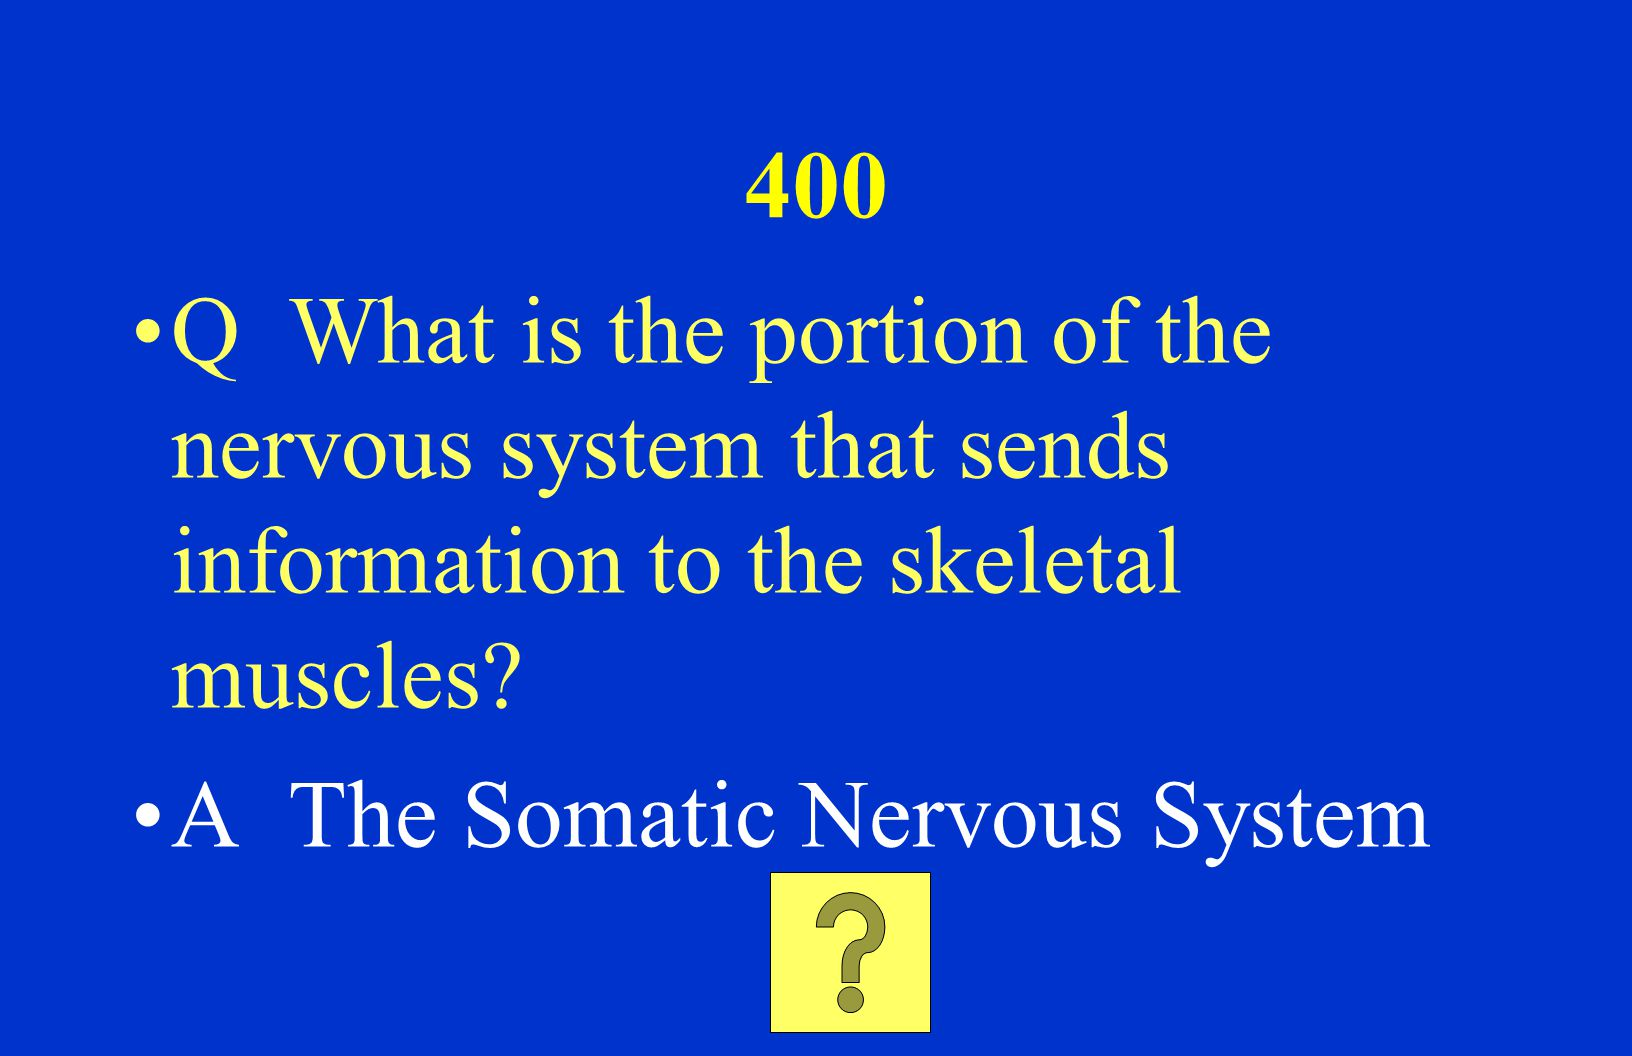 300 Q Which division of the autonomic nervous system involves voluntary muscle action? A The somatic nervous system